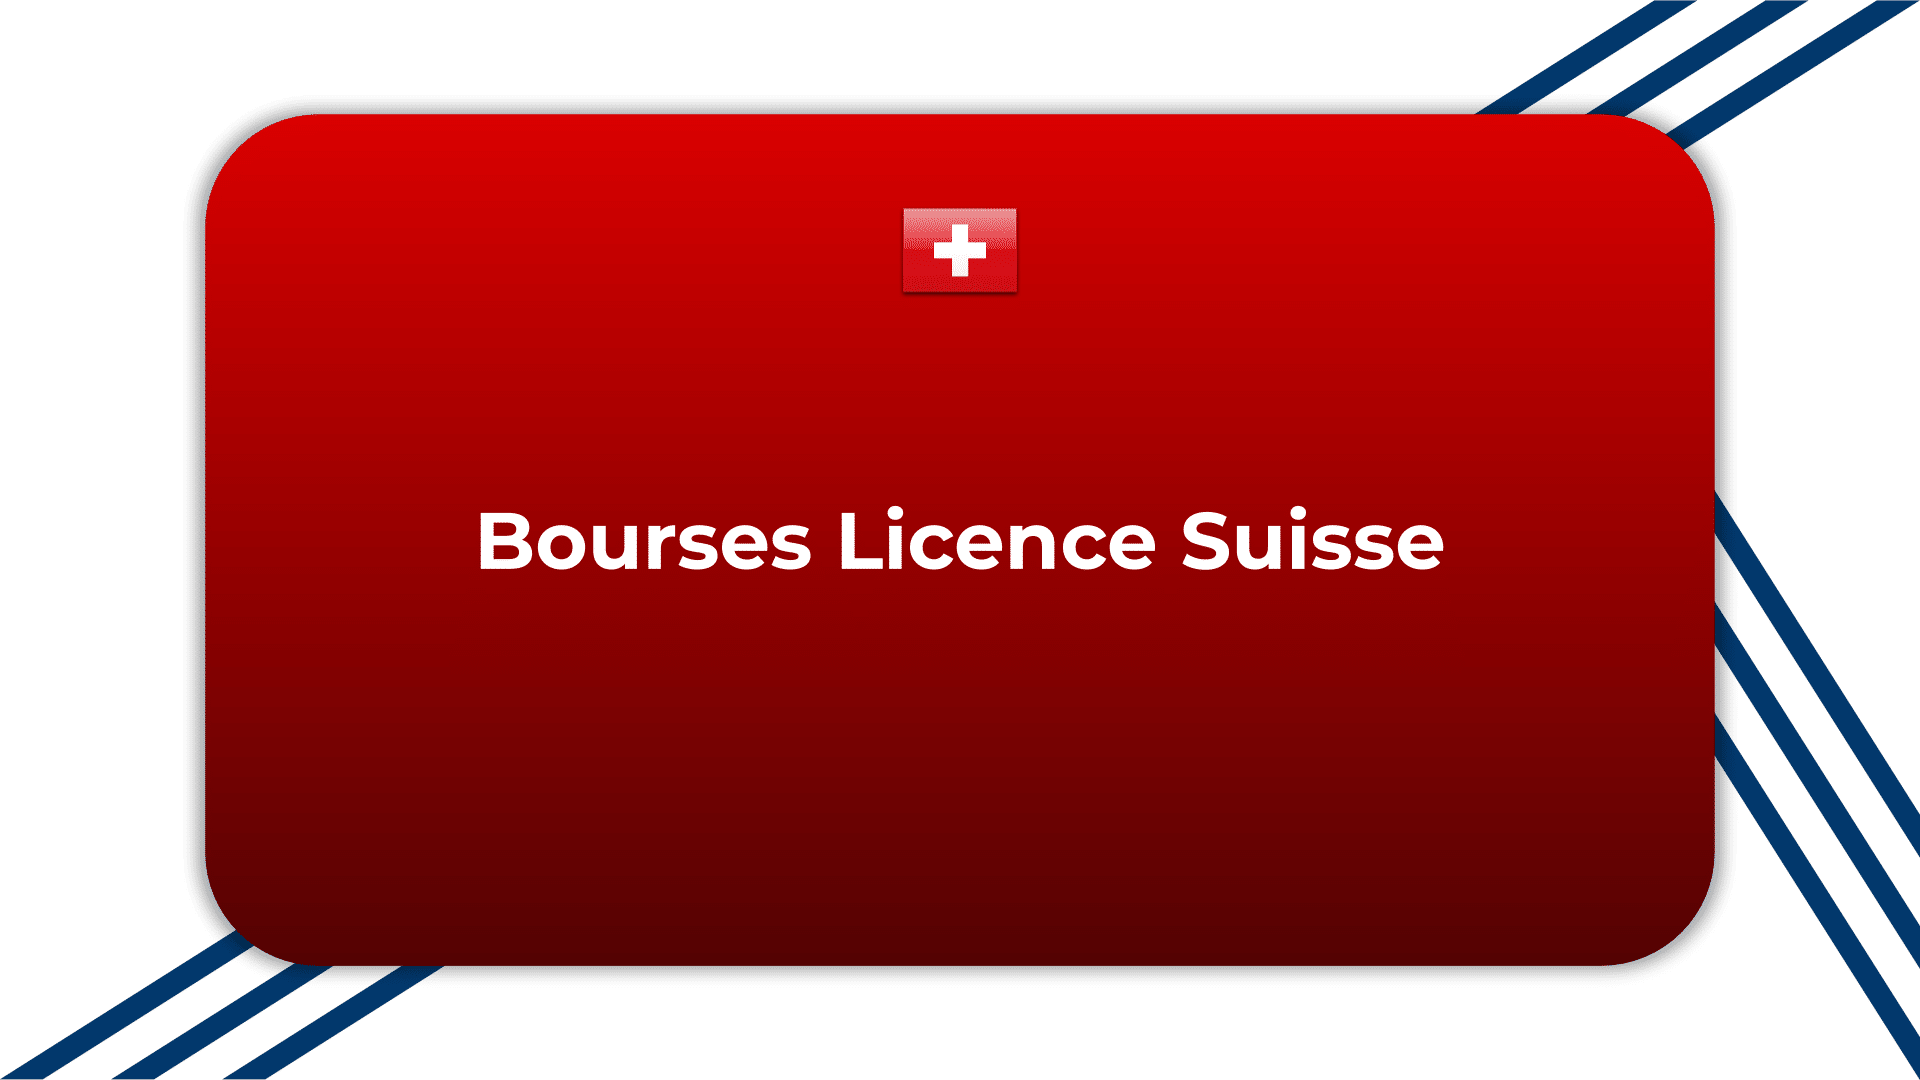 Bourses Licence Suisse